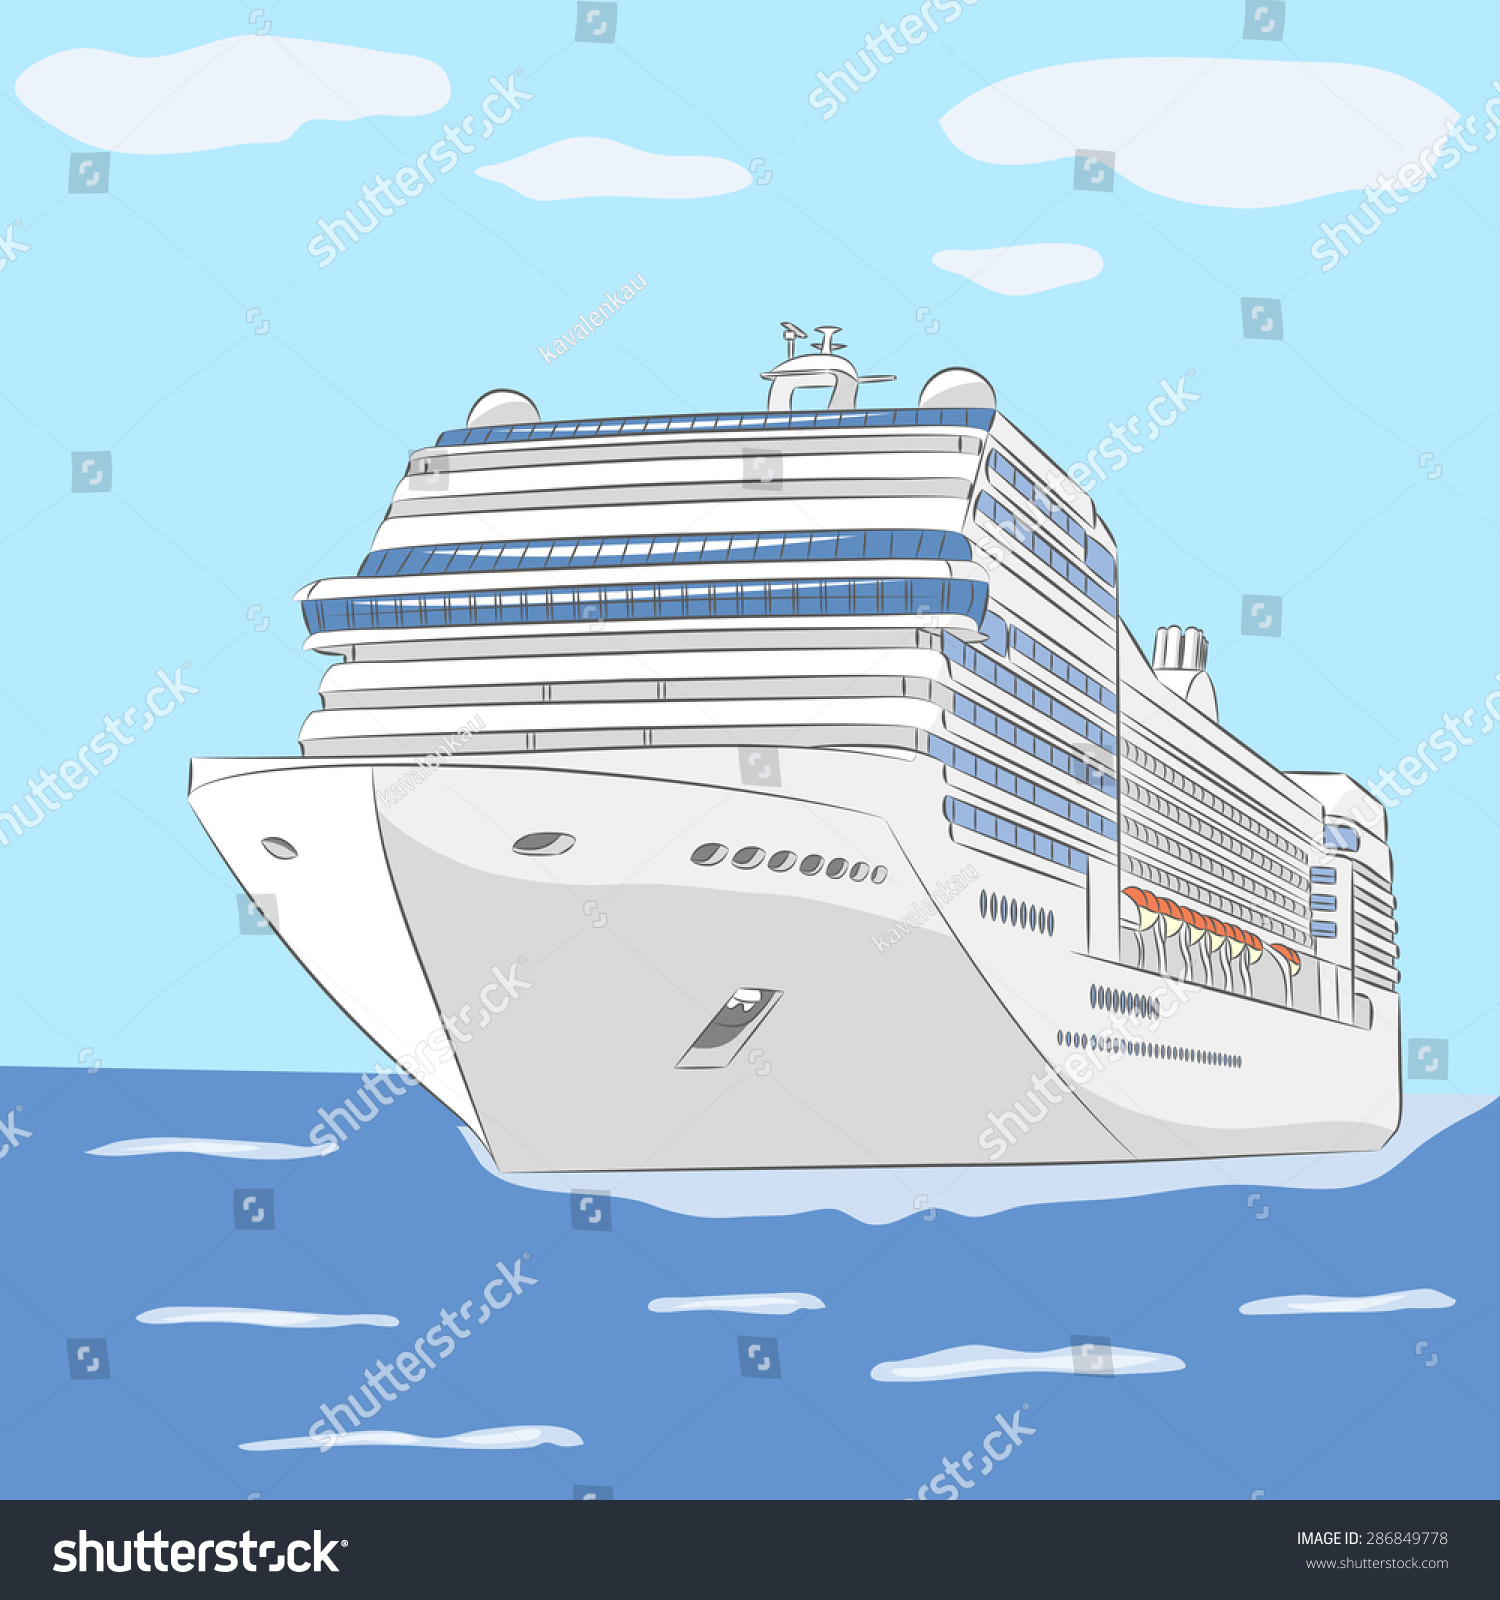 White Cruise Ship Ocean Background Sky Stock Vector HD (Royalty Free ...